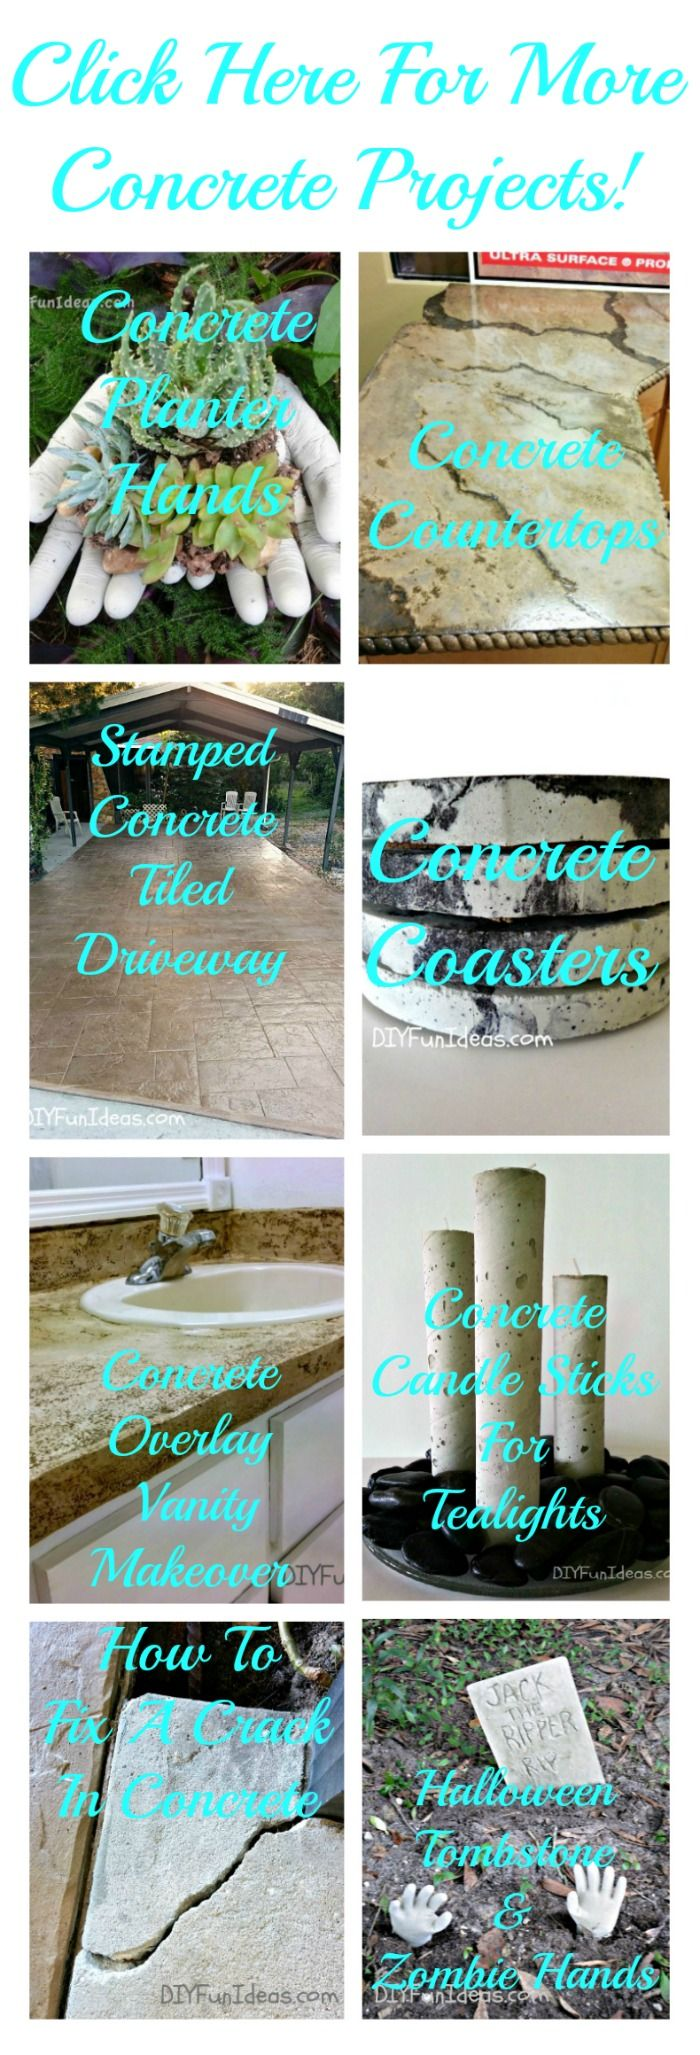 Diy concrete hand planters bowls diy concrete concrete and diy concrete hand planters bowls do it yourself fun ideas solutioingenieria